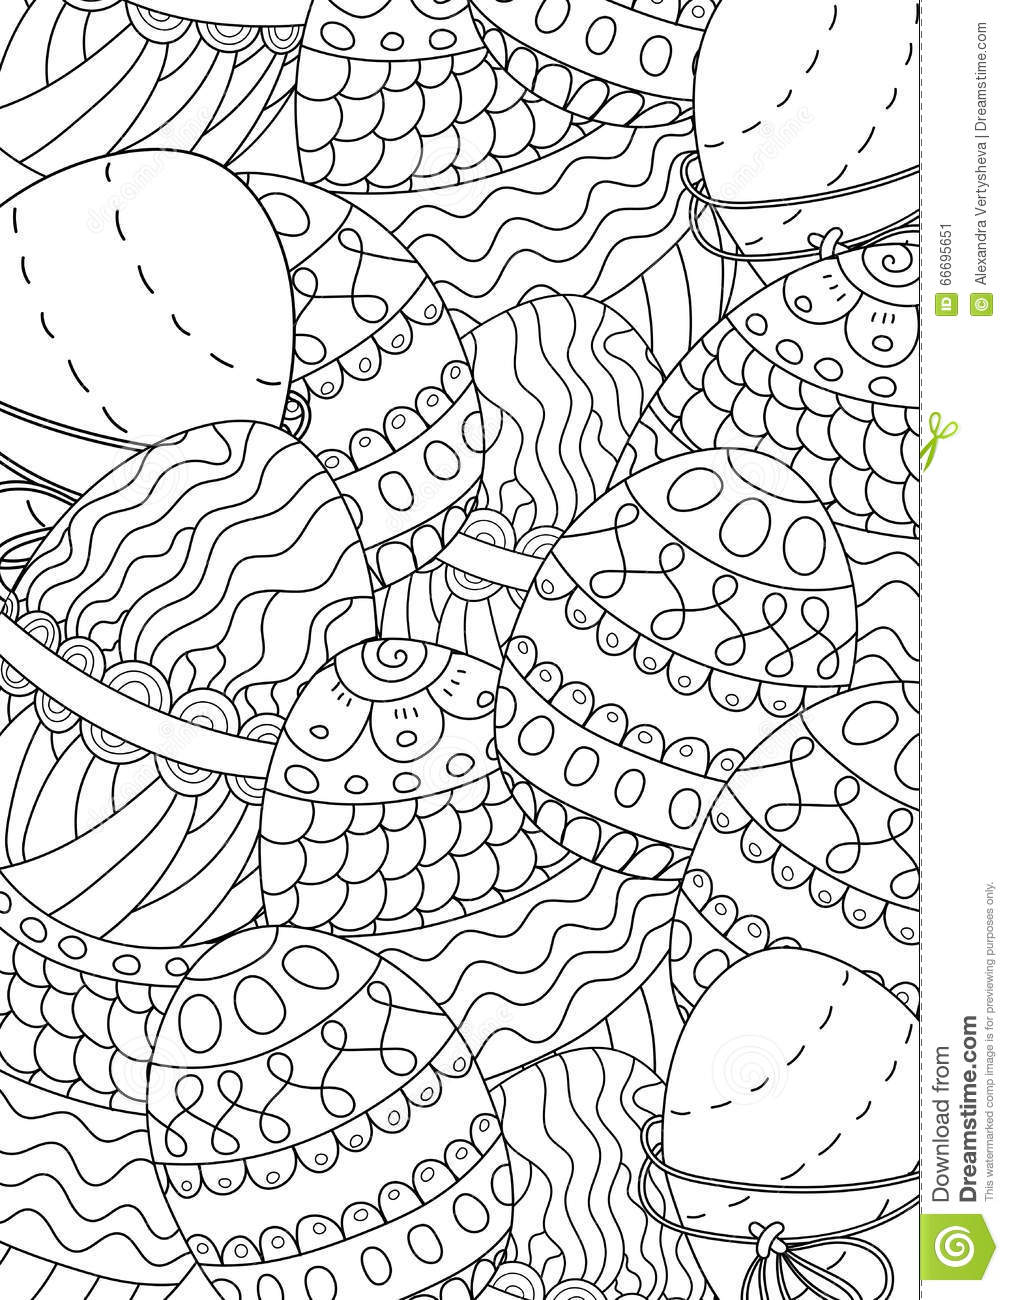 pattern for coloring book  ethnic retro design stock